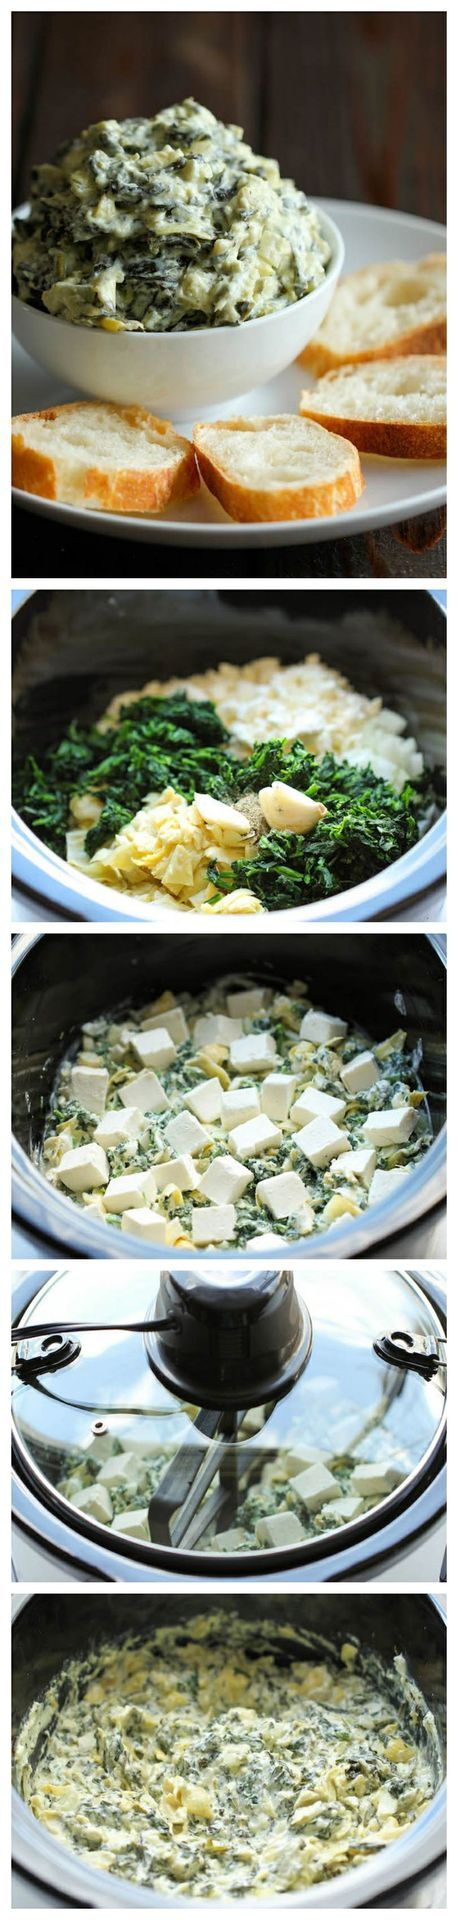 Slow Cooker Spinach and Artichoke Dip - Simply throw everything in the crockpot for the easiest most effortless spinach and artichoke dip!